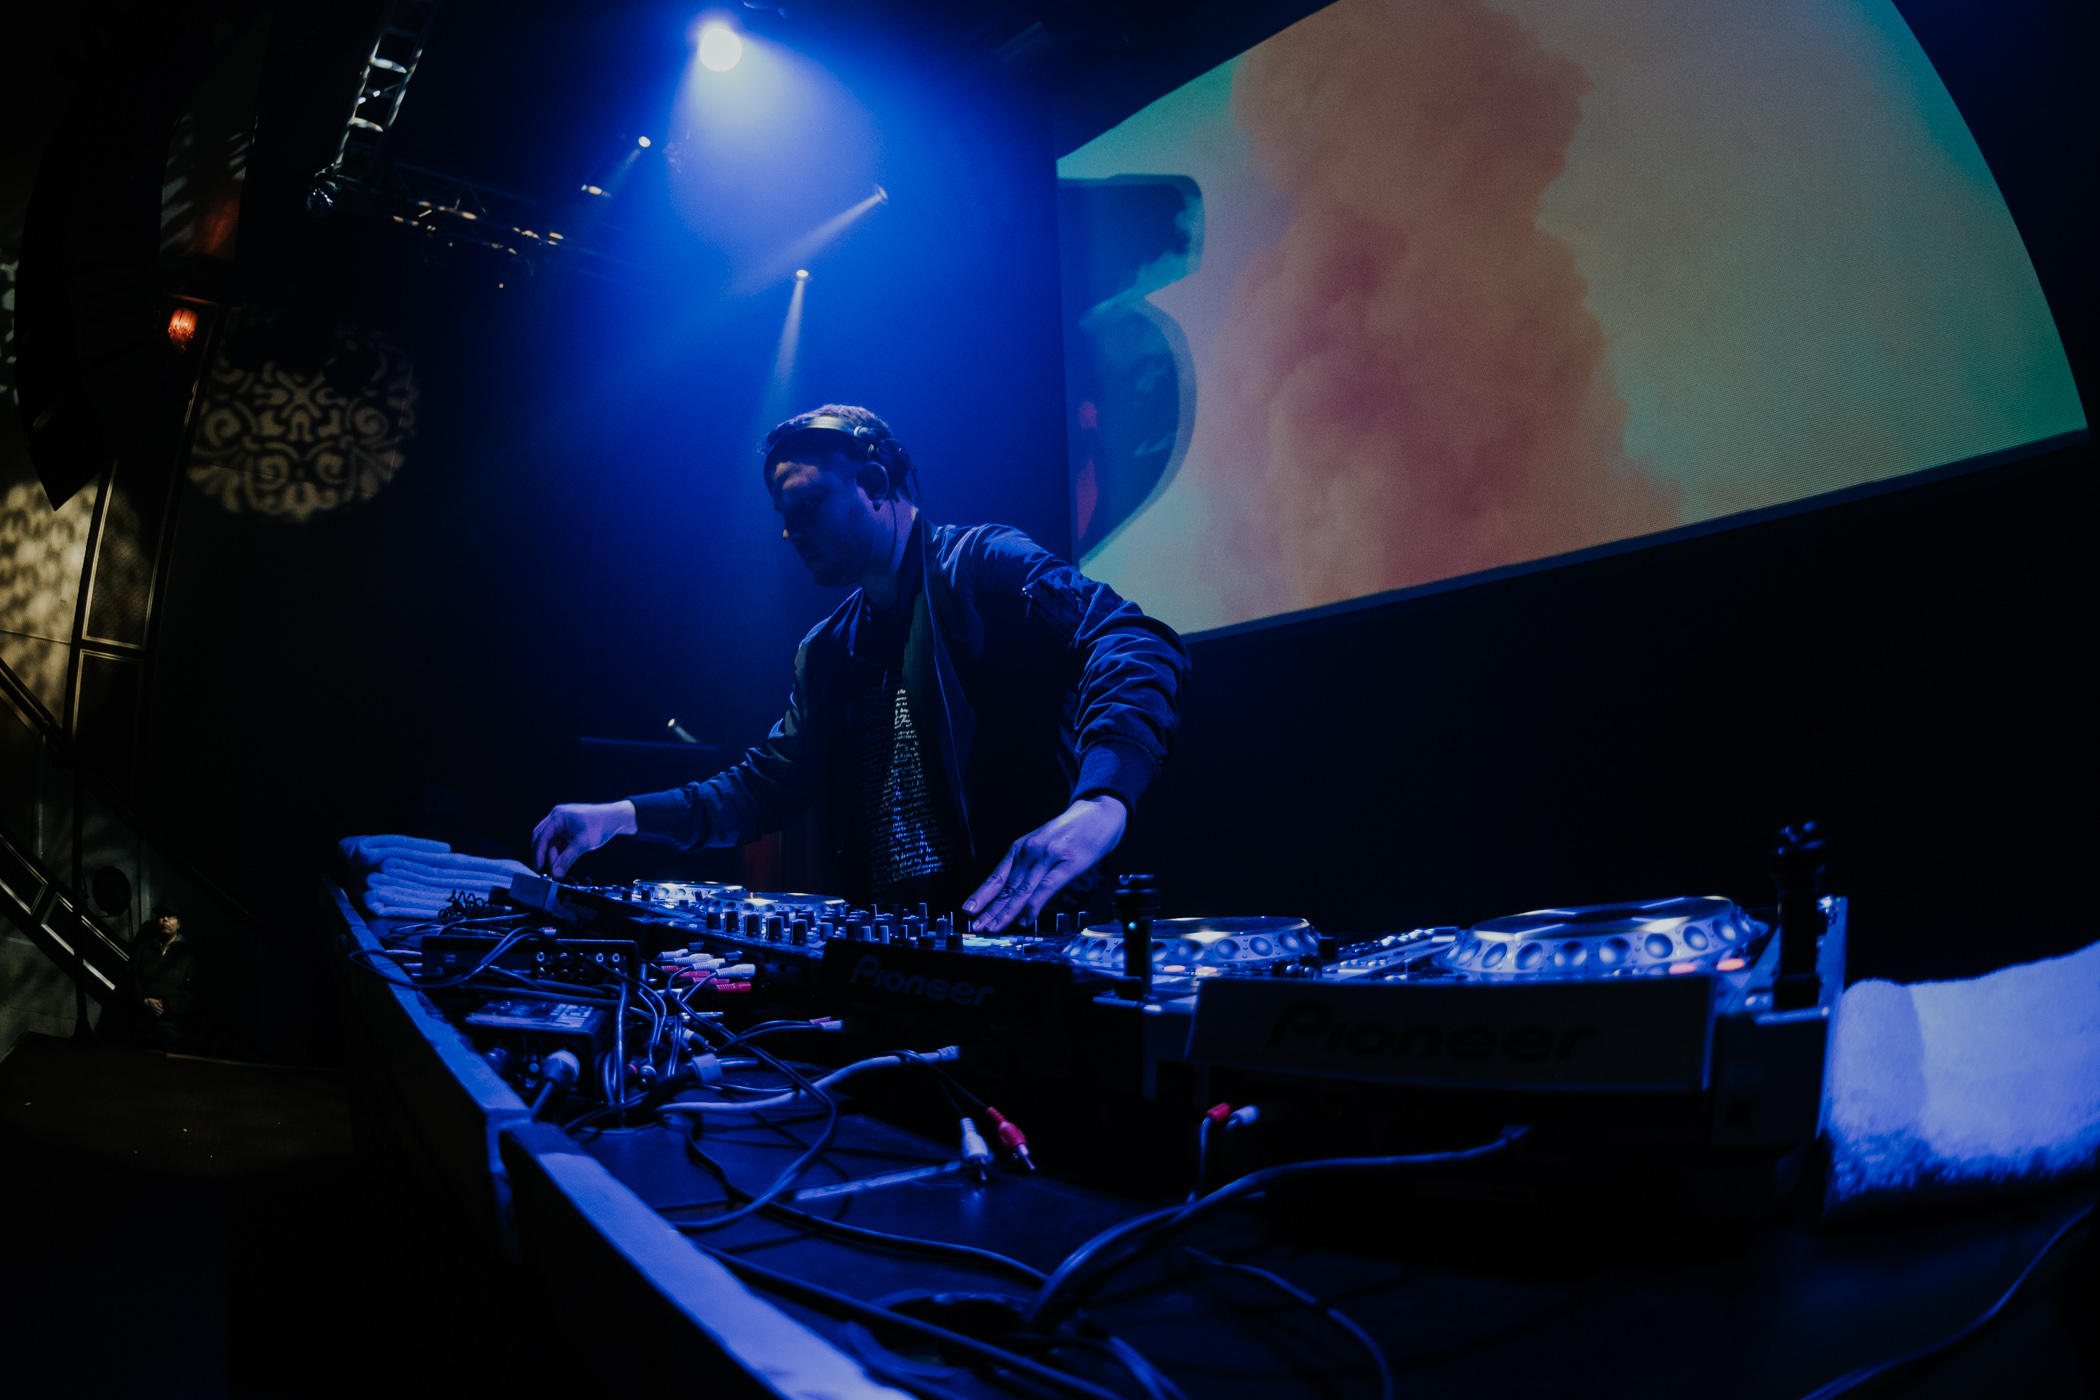 Borgeous-Venue-Timothy_Nguyen-20190131 (9 of 15).jpg